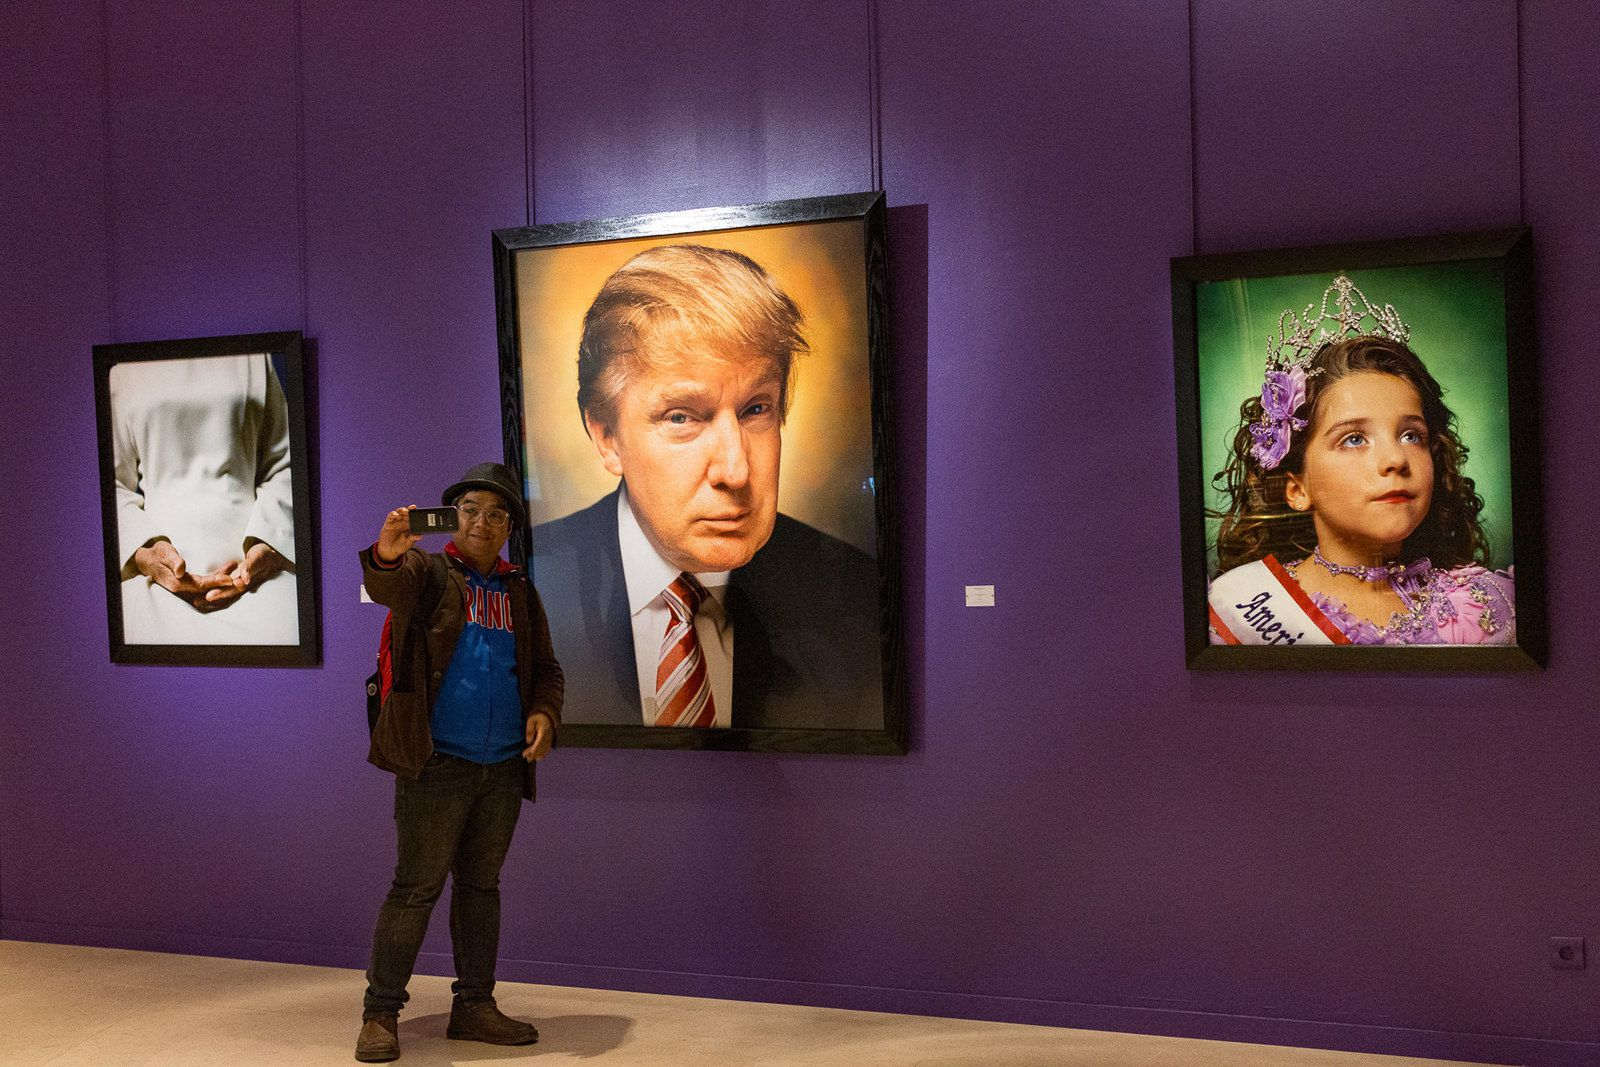 selfie - Donald Trump - exposition photographique - humour